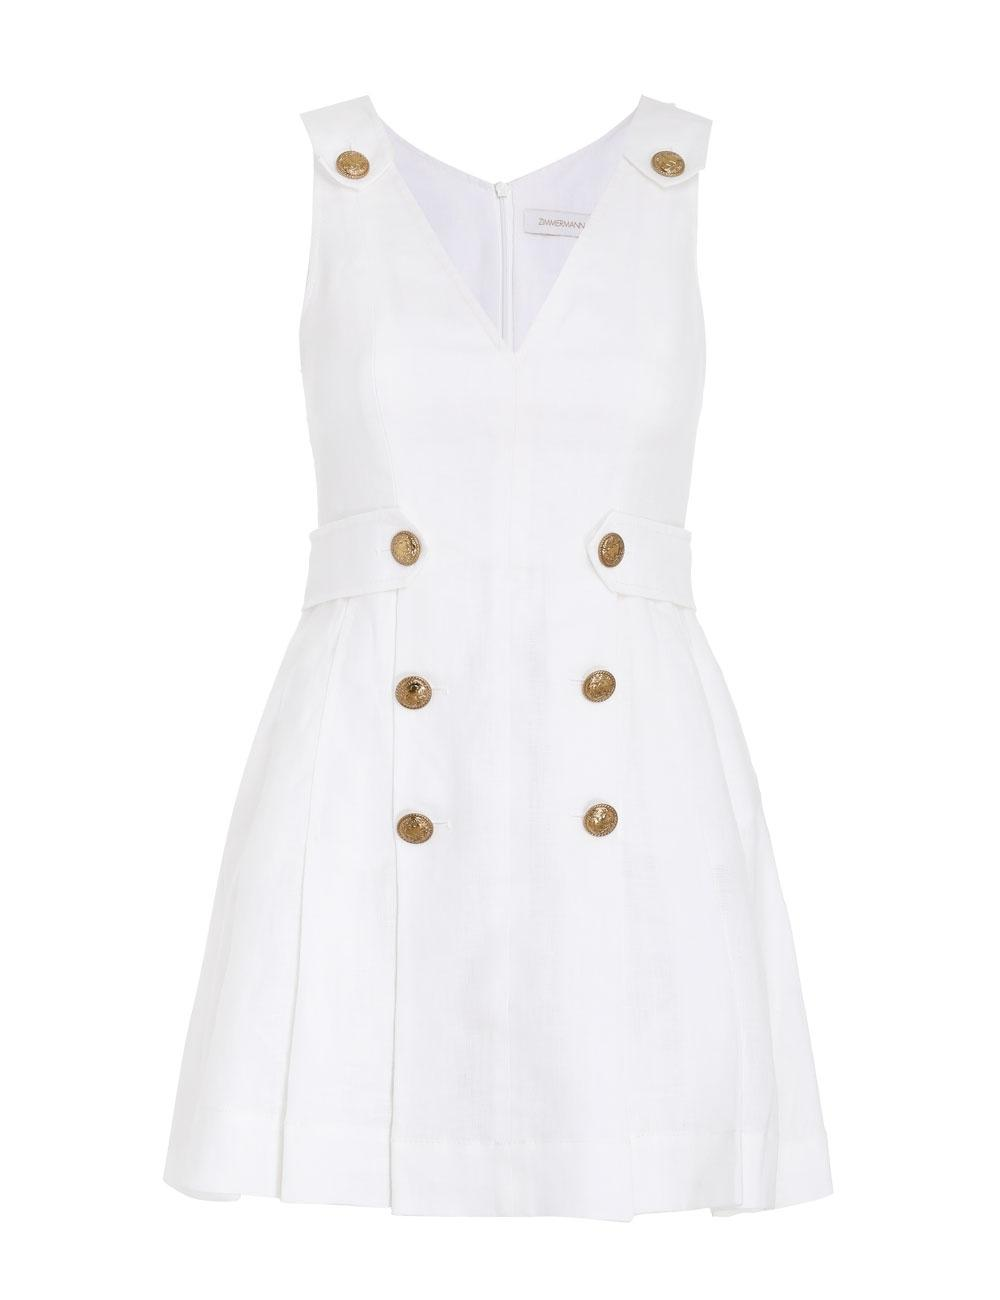 The Lovestruck Buttoned Mini Dress Item # 9501DAND